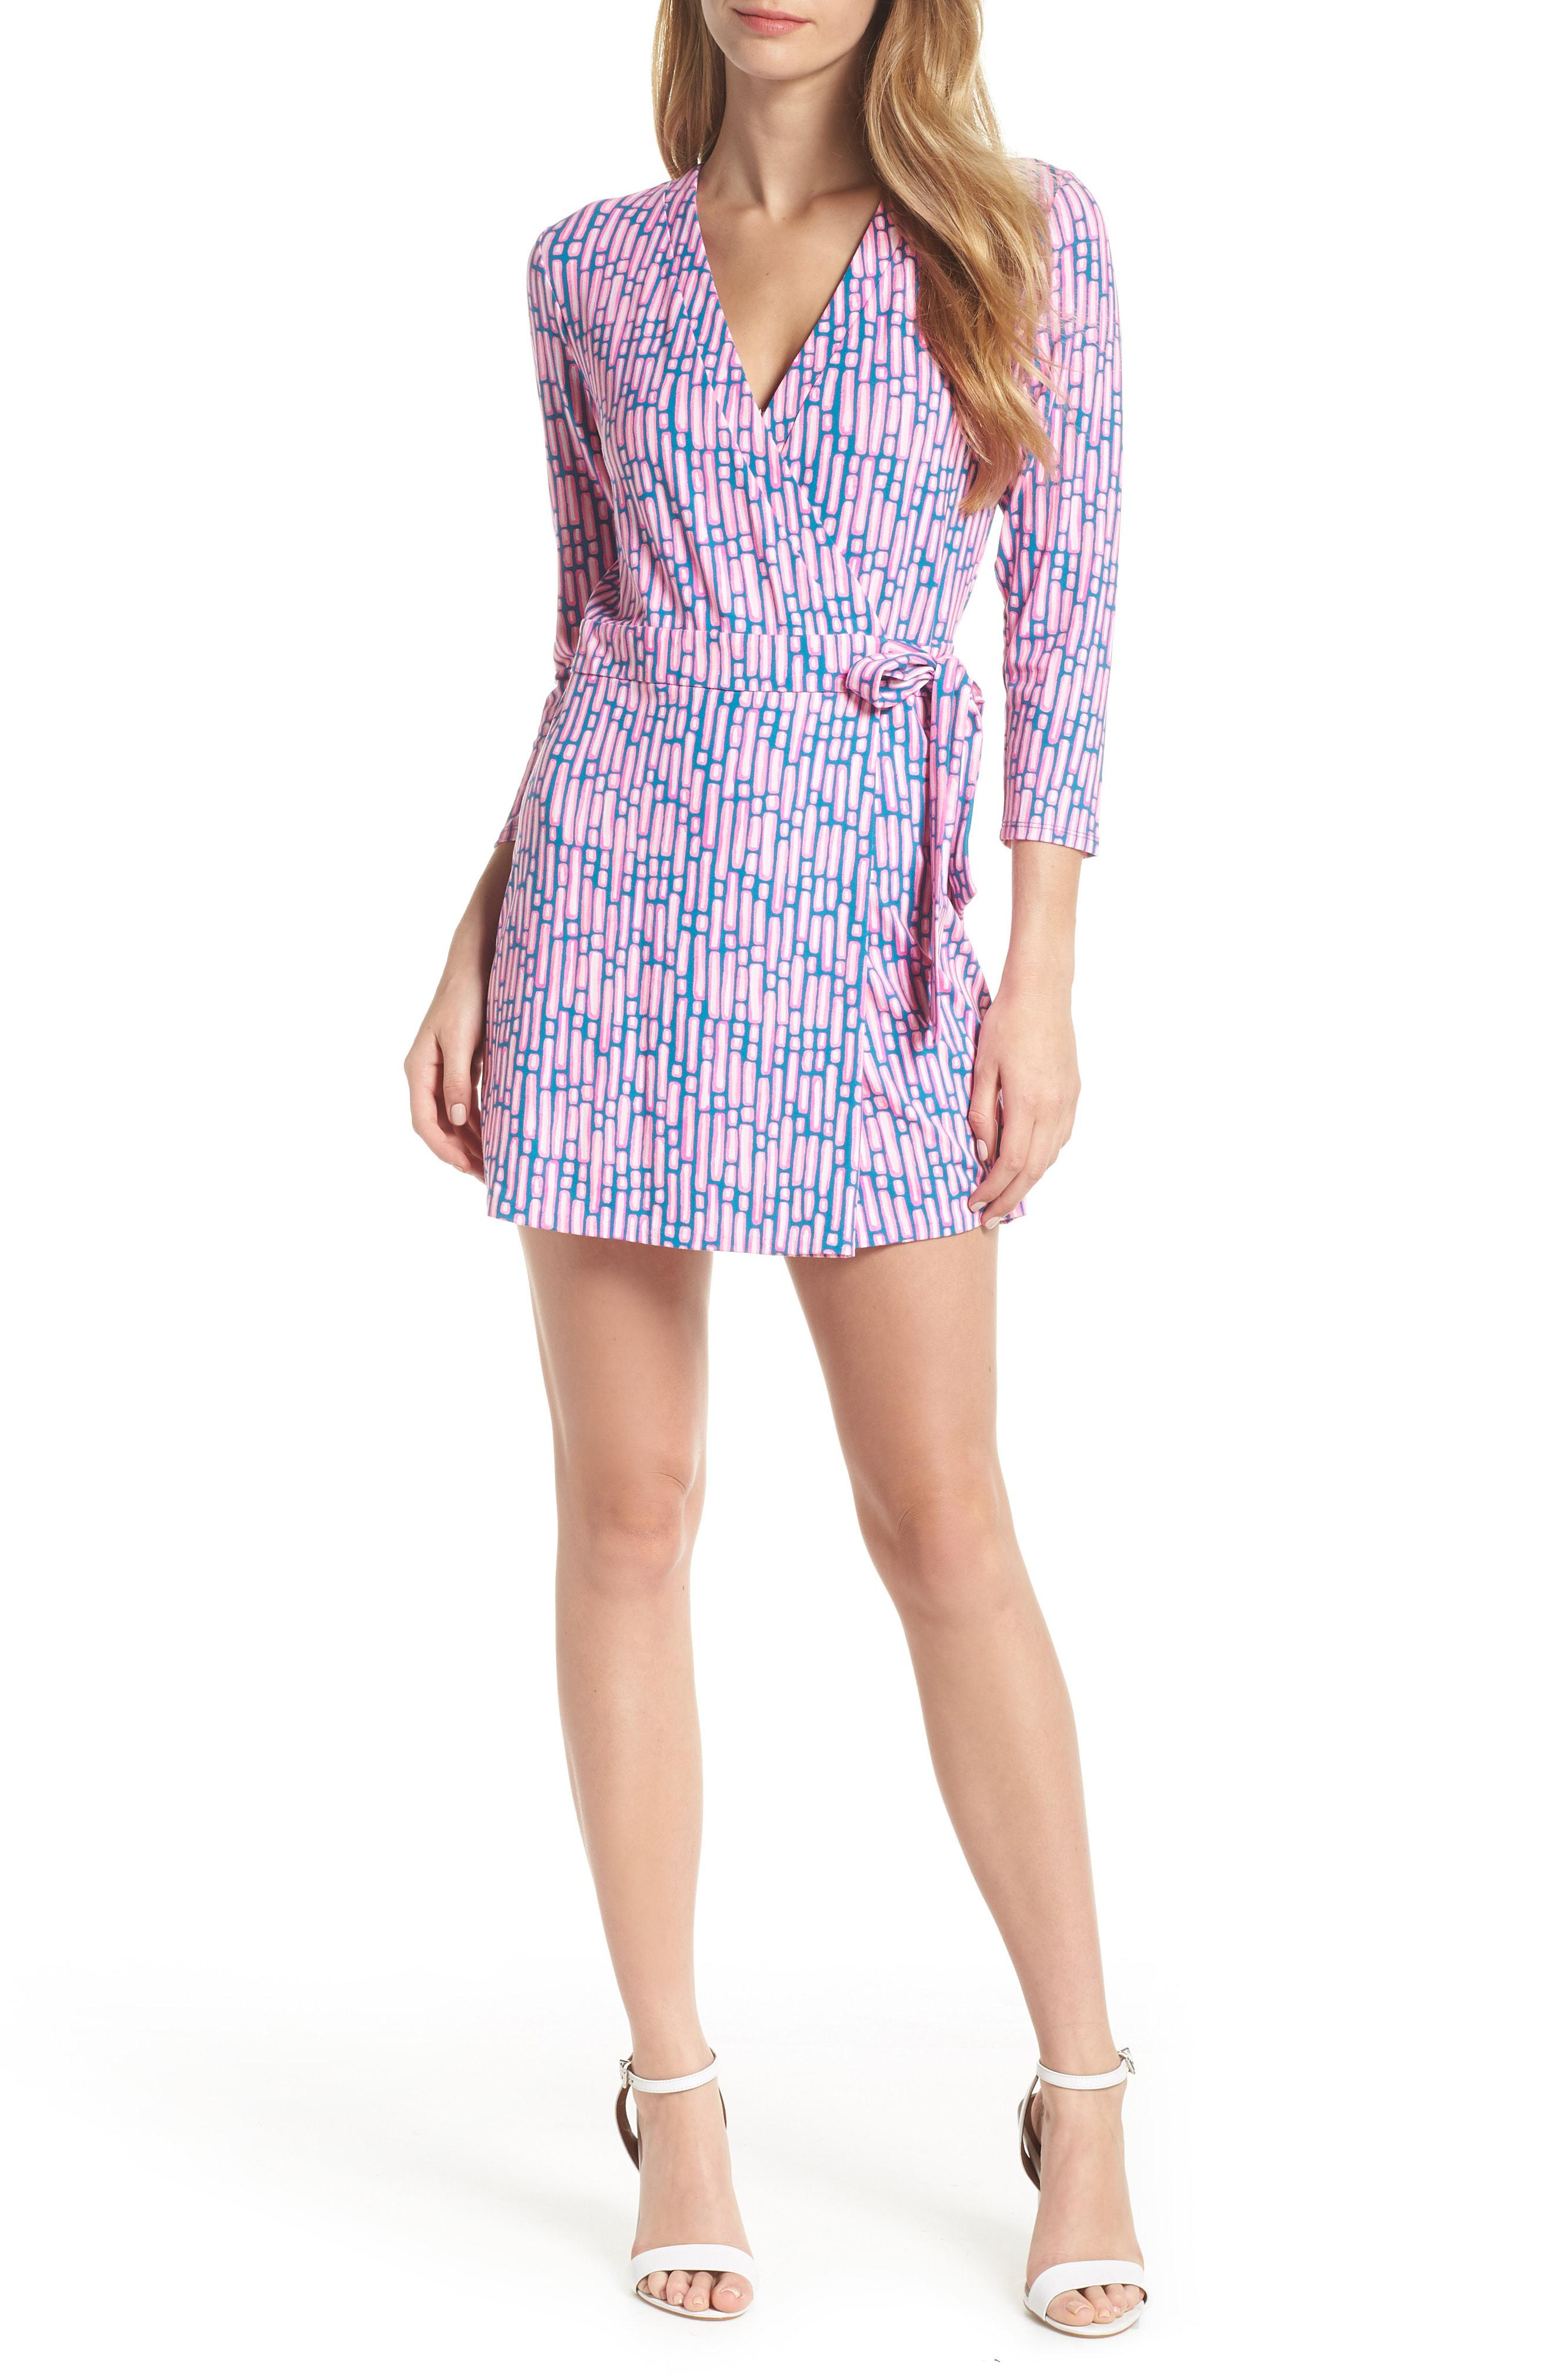 42c0002fea43 Lyst - Lilly Pulitzer Lilly Pulitzer Karlie Wrap Romper in Blue